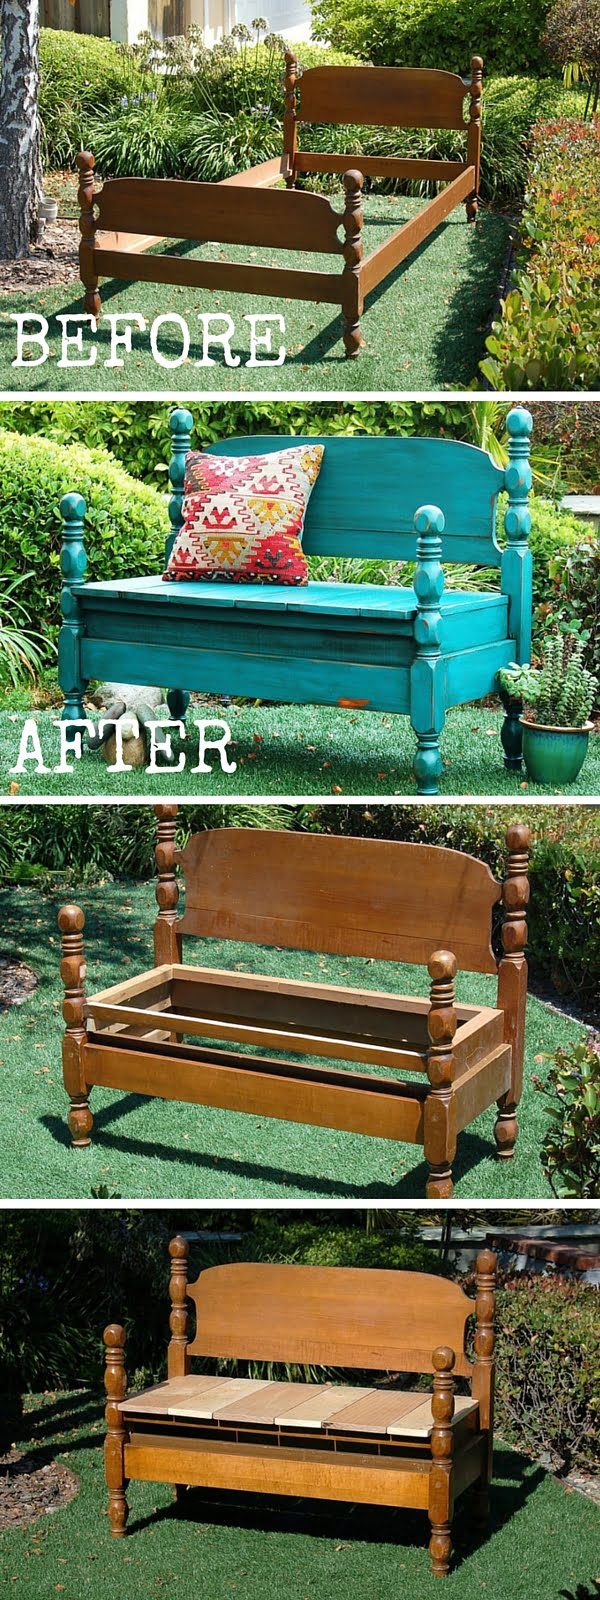 Check out the tutorial:  Turn an Old Bed Into a Bench